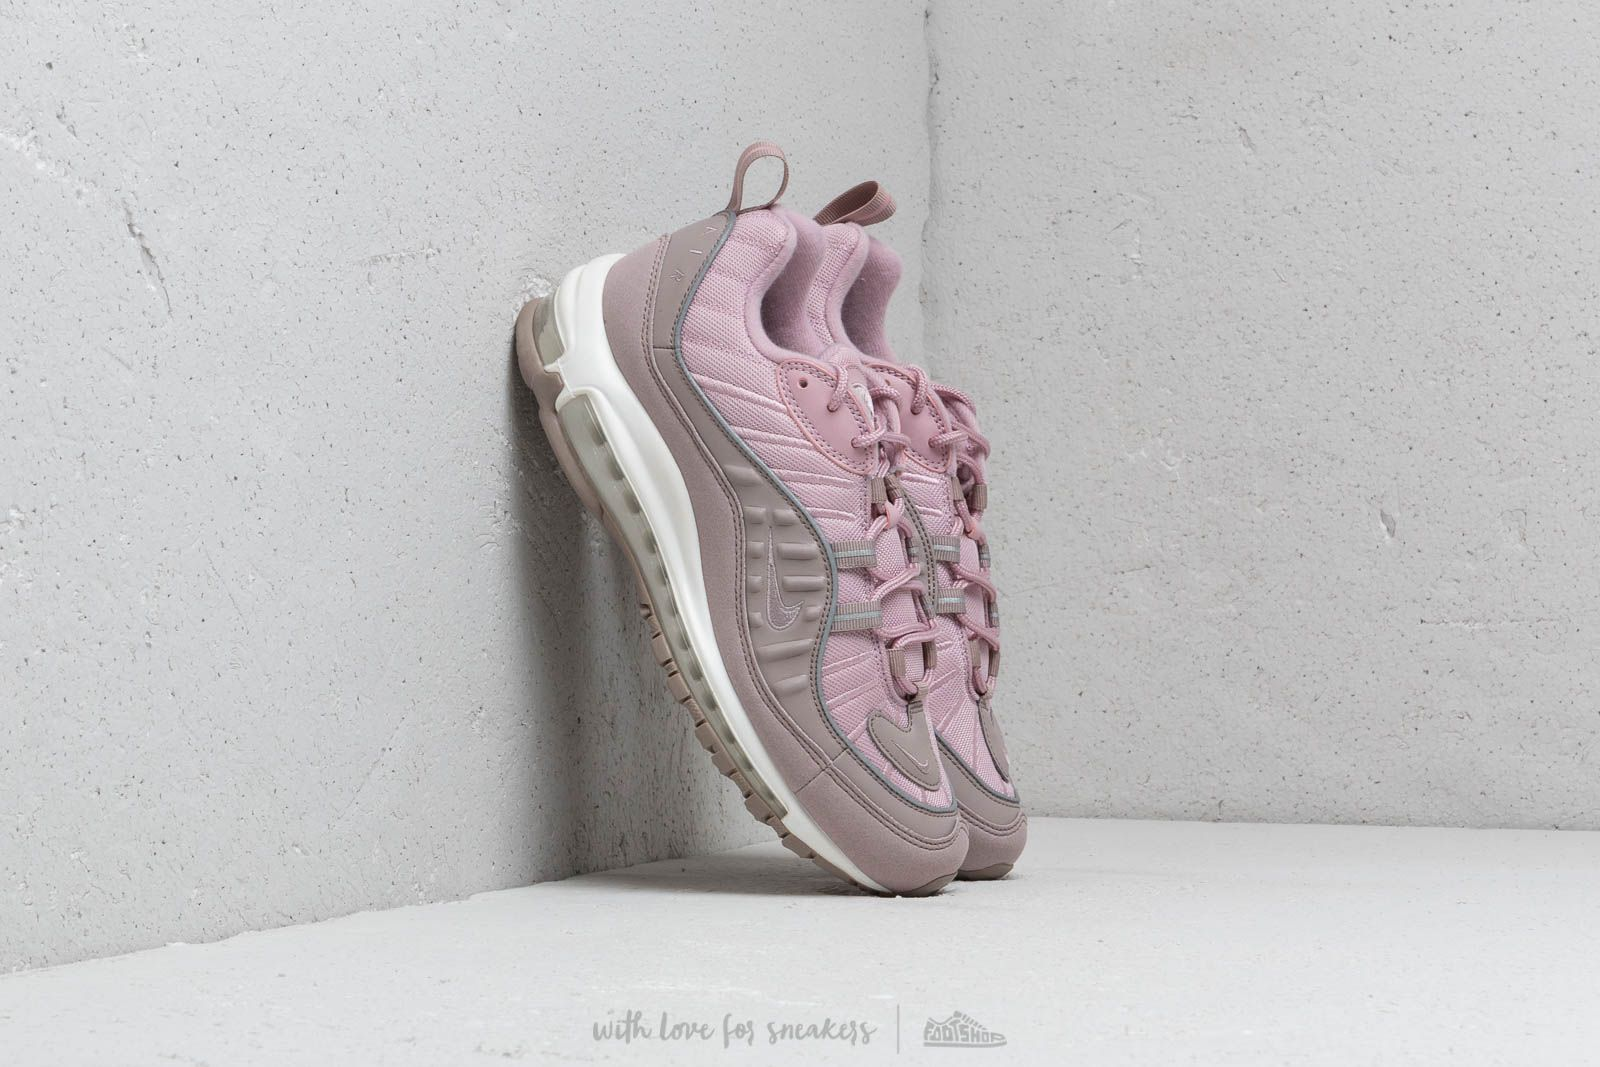 Chaussures et baskets homme Nike Air Max 98 Pumice/ Pumice-Plum Chalk-Summit White